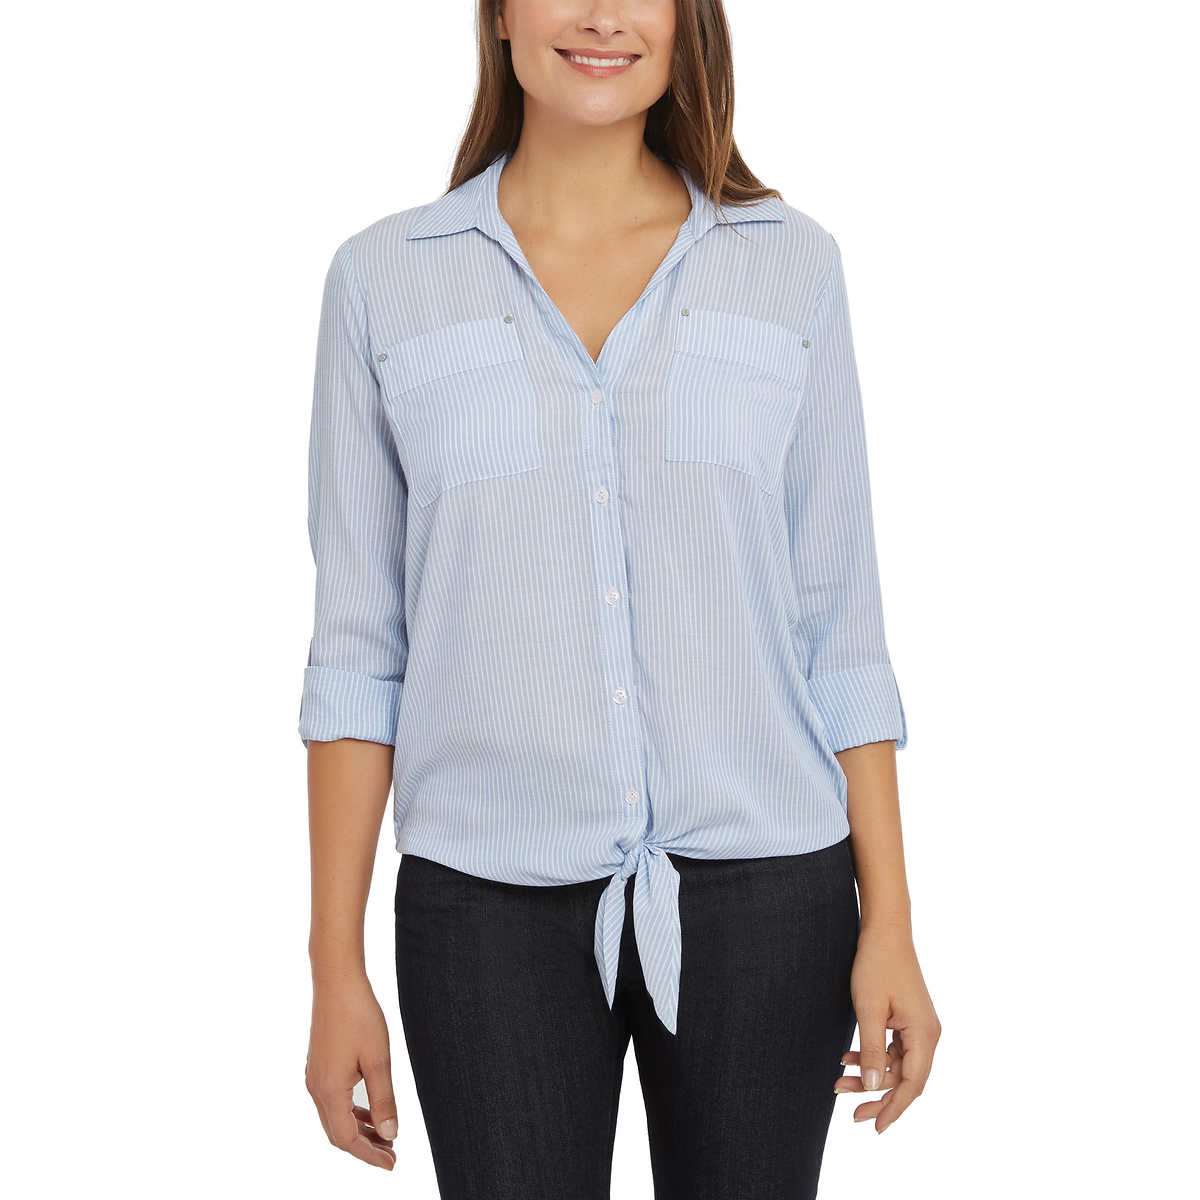 Jones New York Women's Front Tie Button Down Blouse Top (Blue Stripe, M)